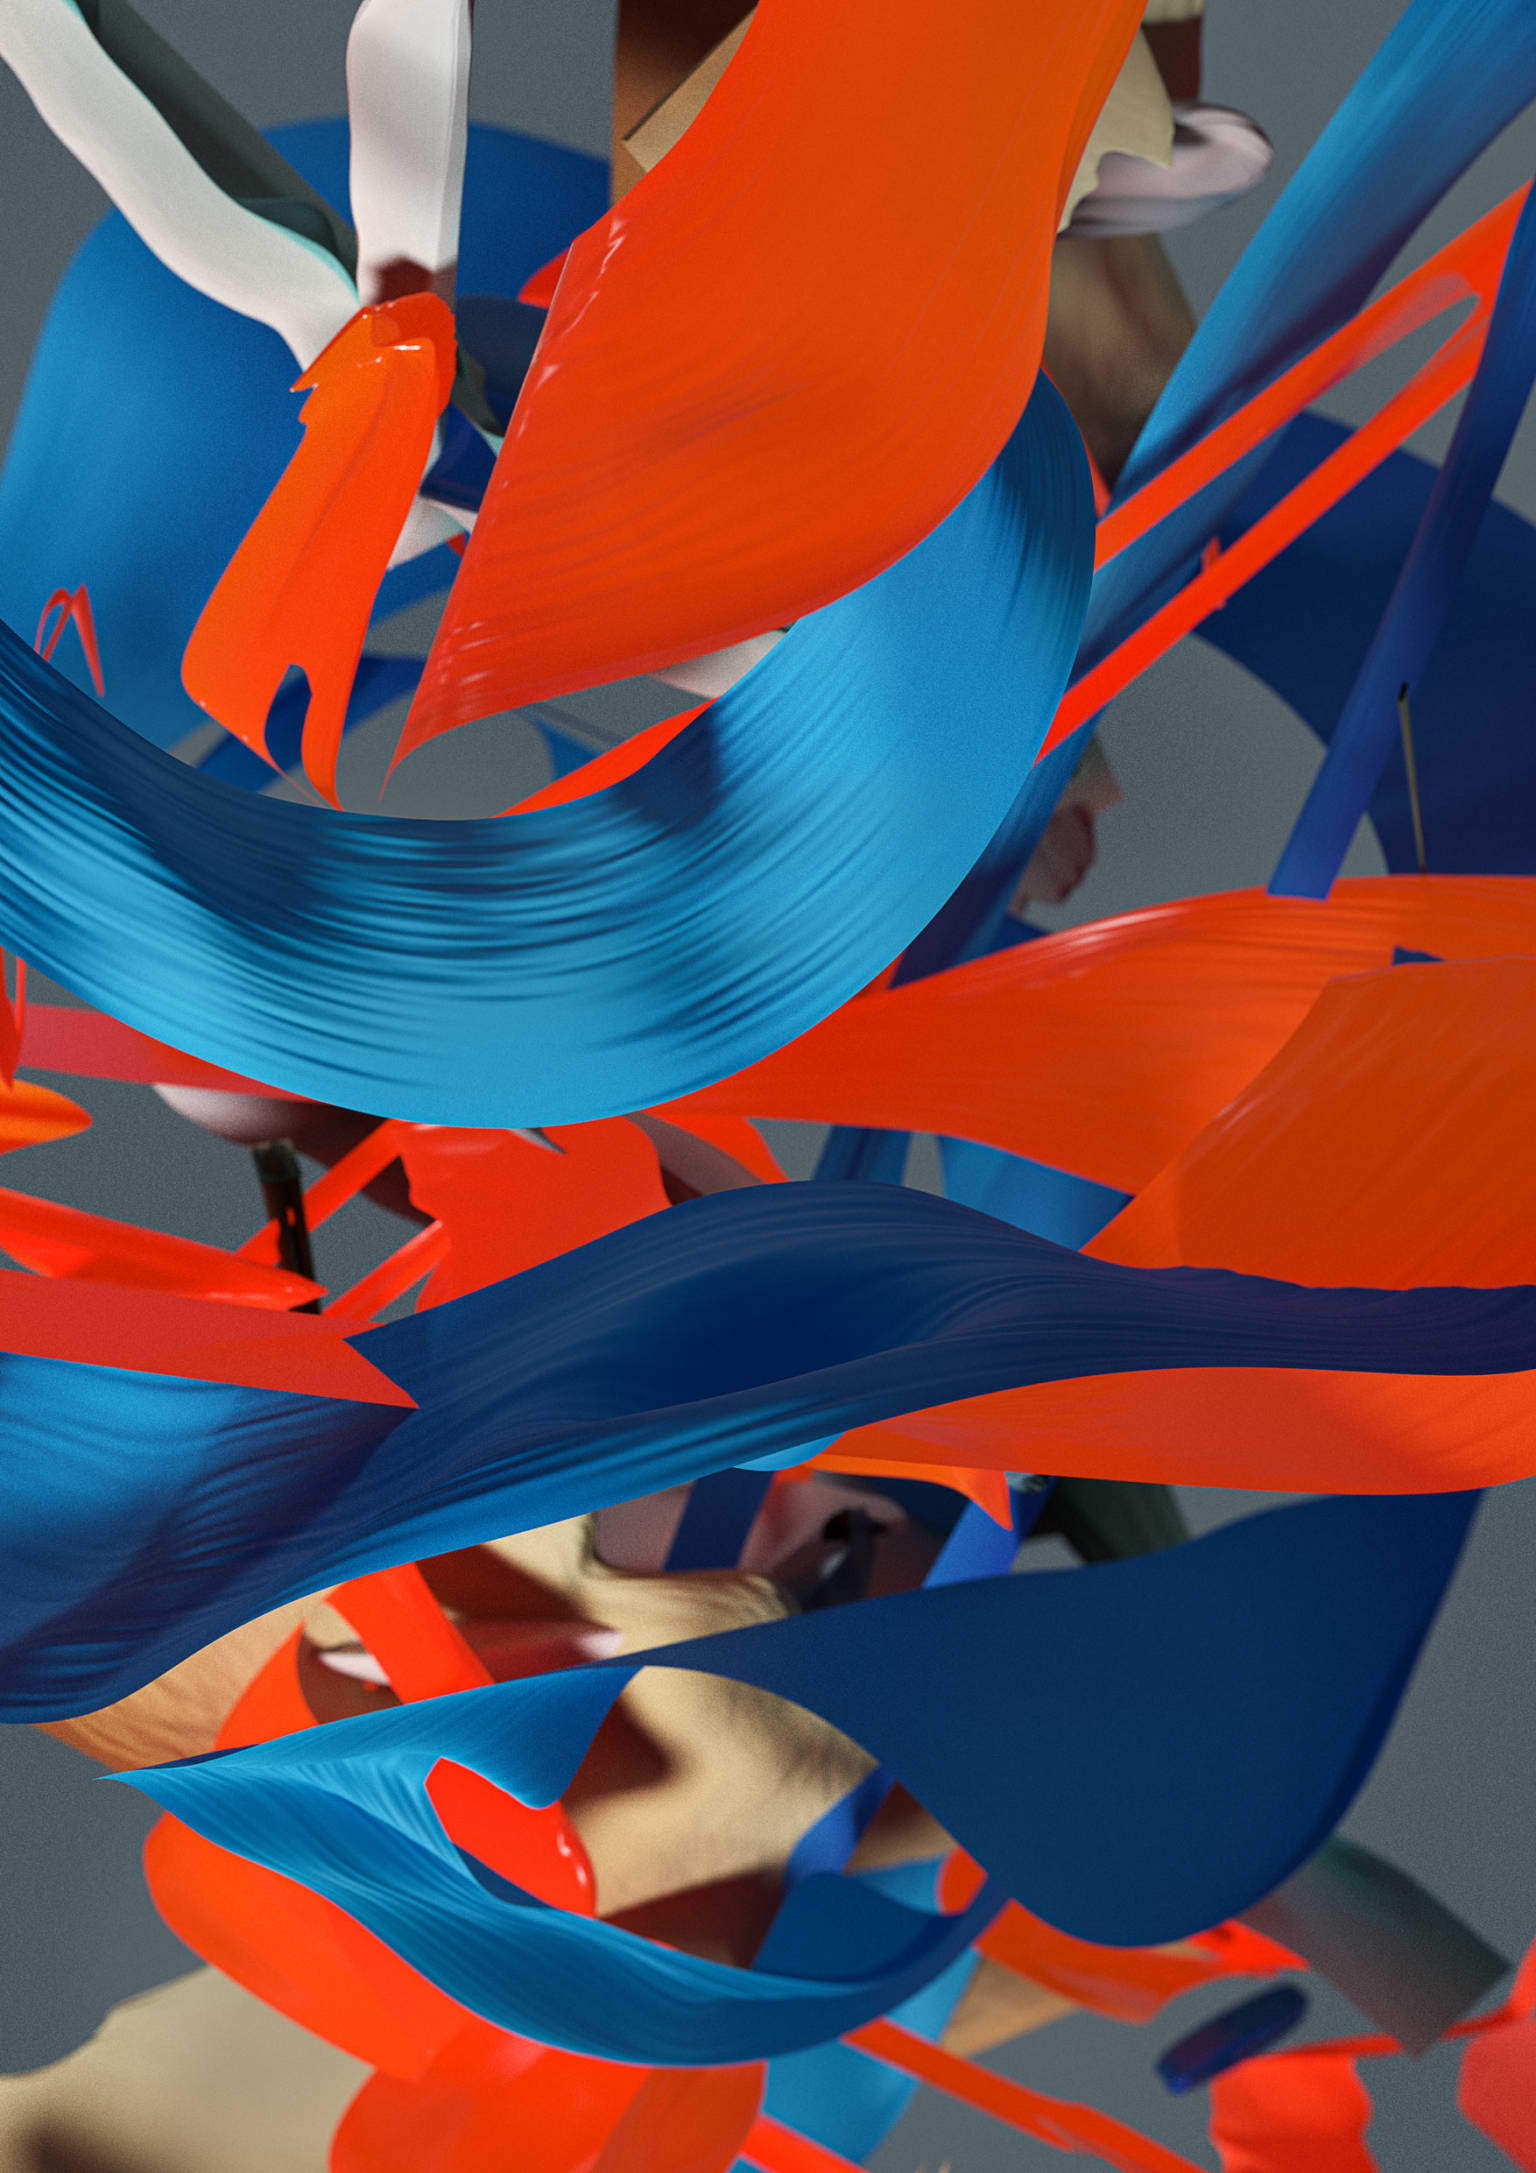 Abstract and Generative Digital Paintings